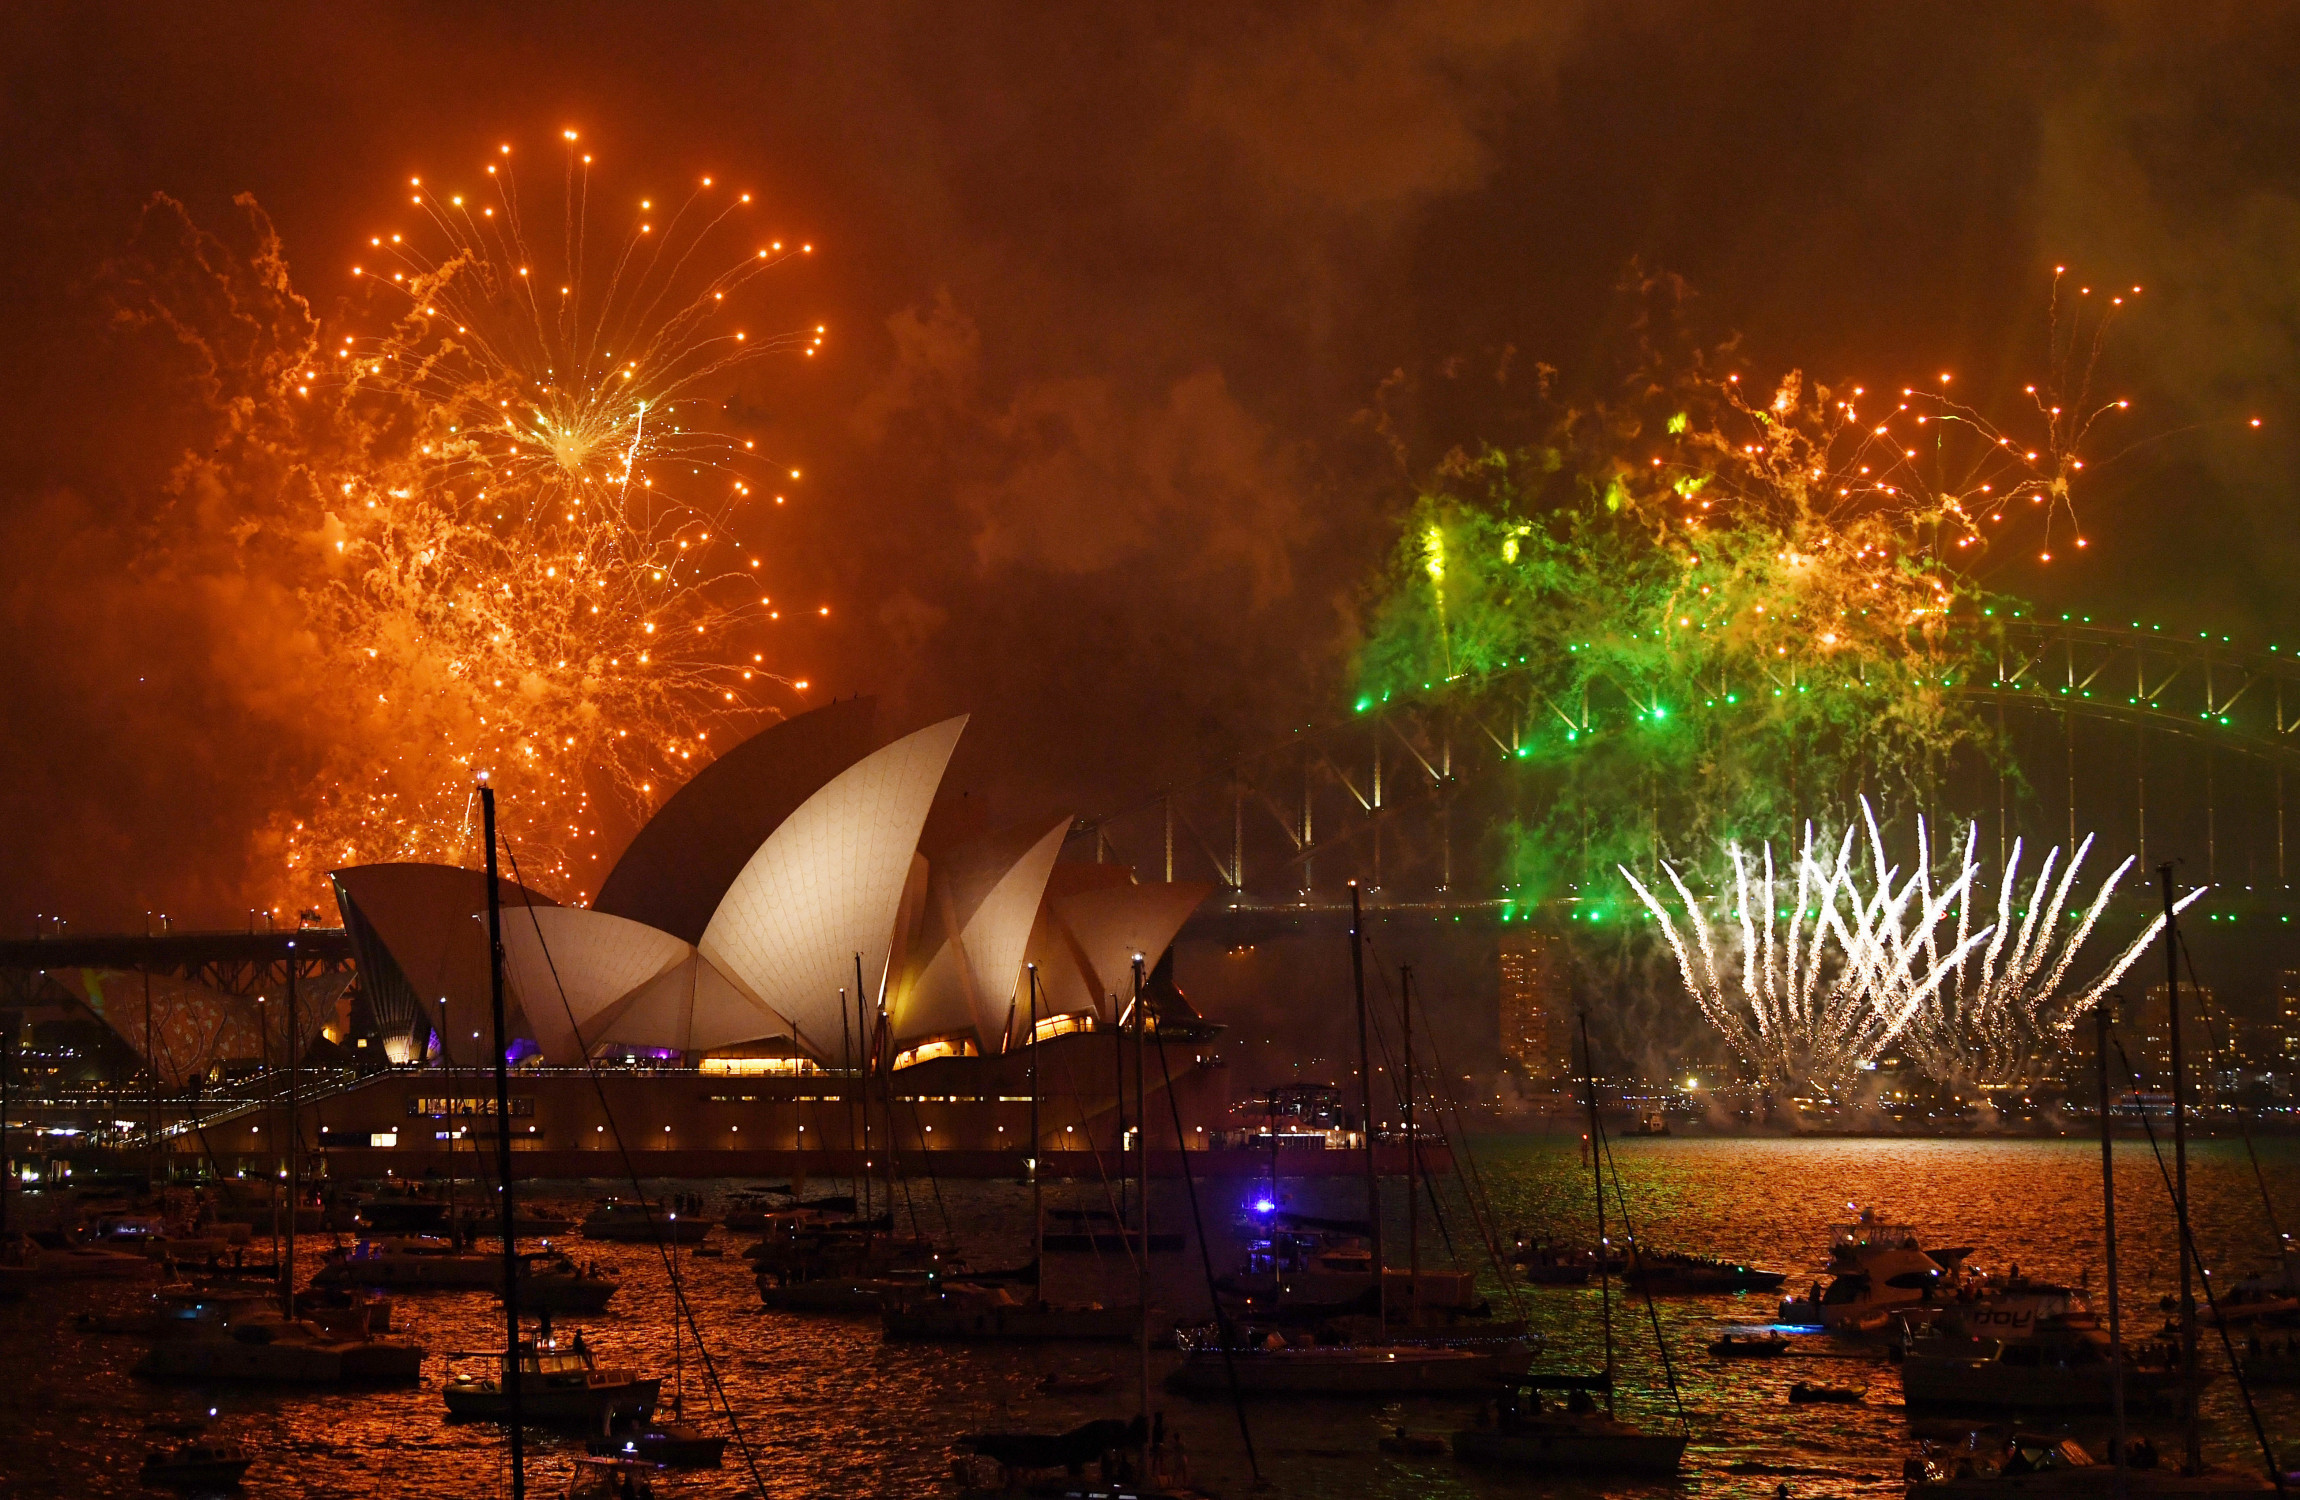 Cities across the globe welcome New Year